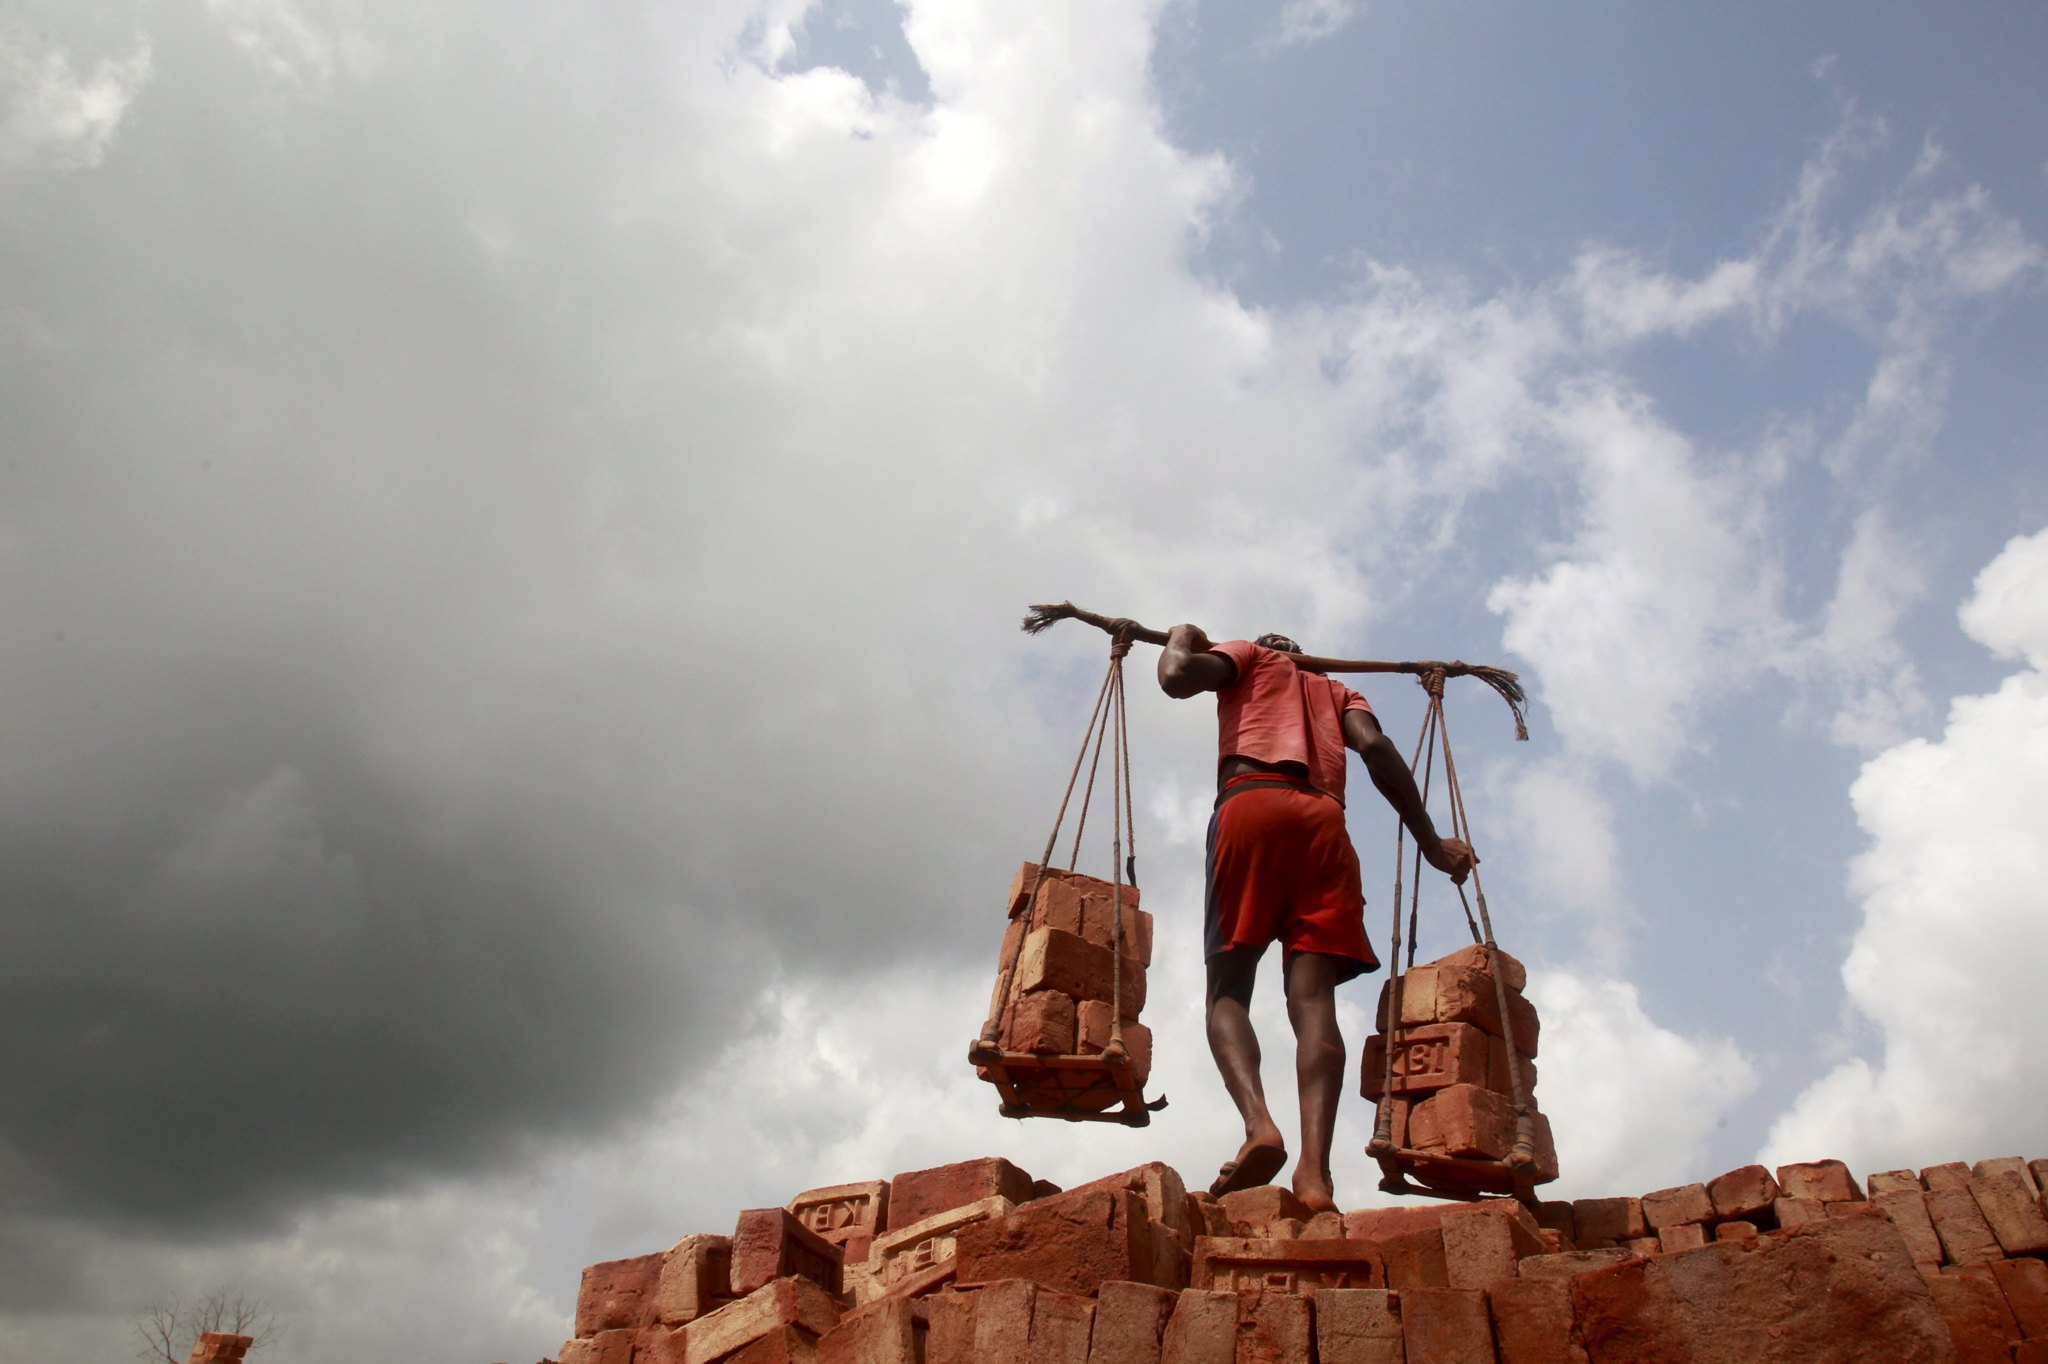 A labourer carries bricks at a brick factory on the eve of May Day or Labour Day on the outskirts of Agartala, India, April 30, 2015. (Photo by Jayanta Dey/Reuters)